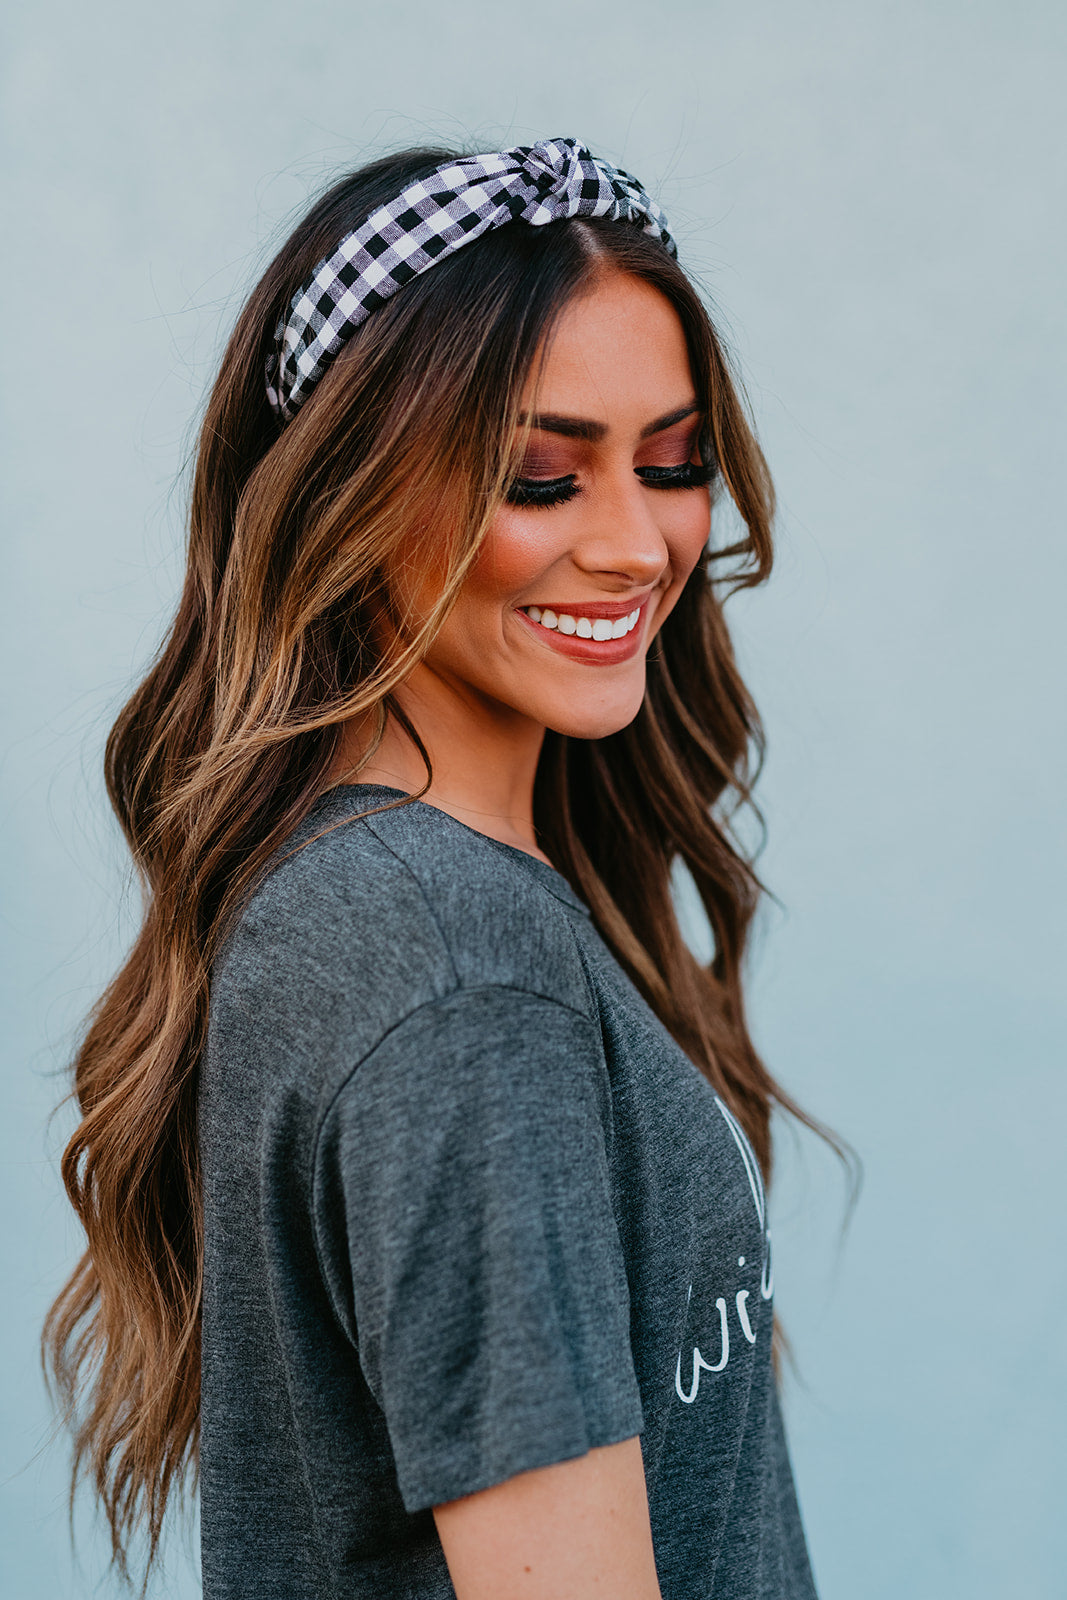 THE BLACK AND WHITE GINGHAM KNOTTED HEADBAND